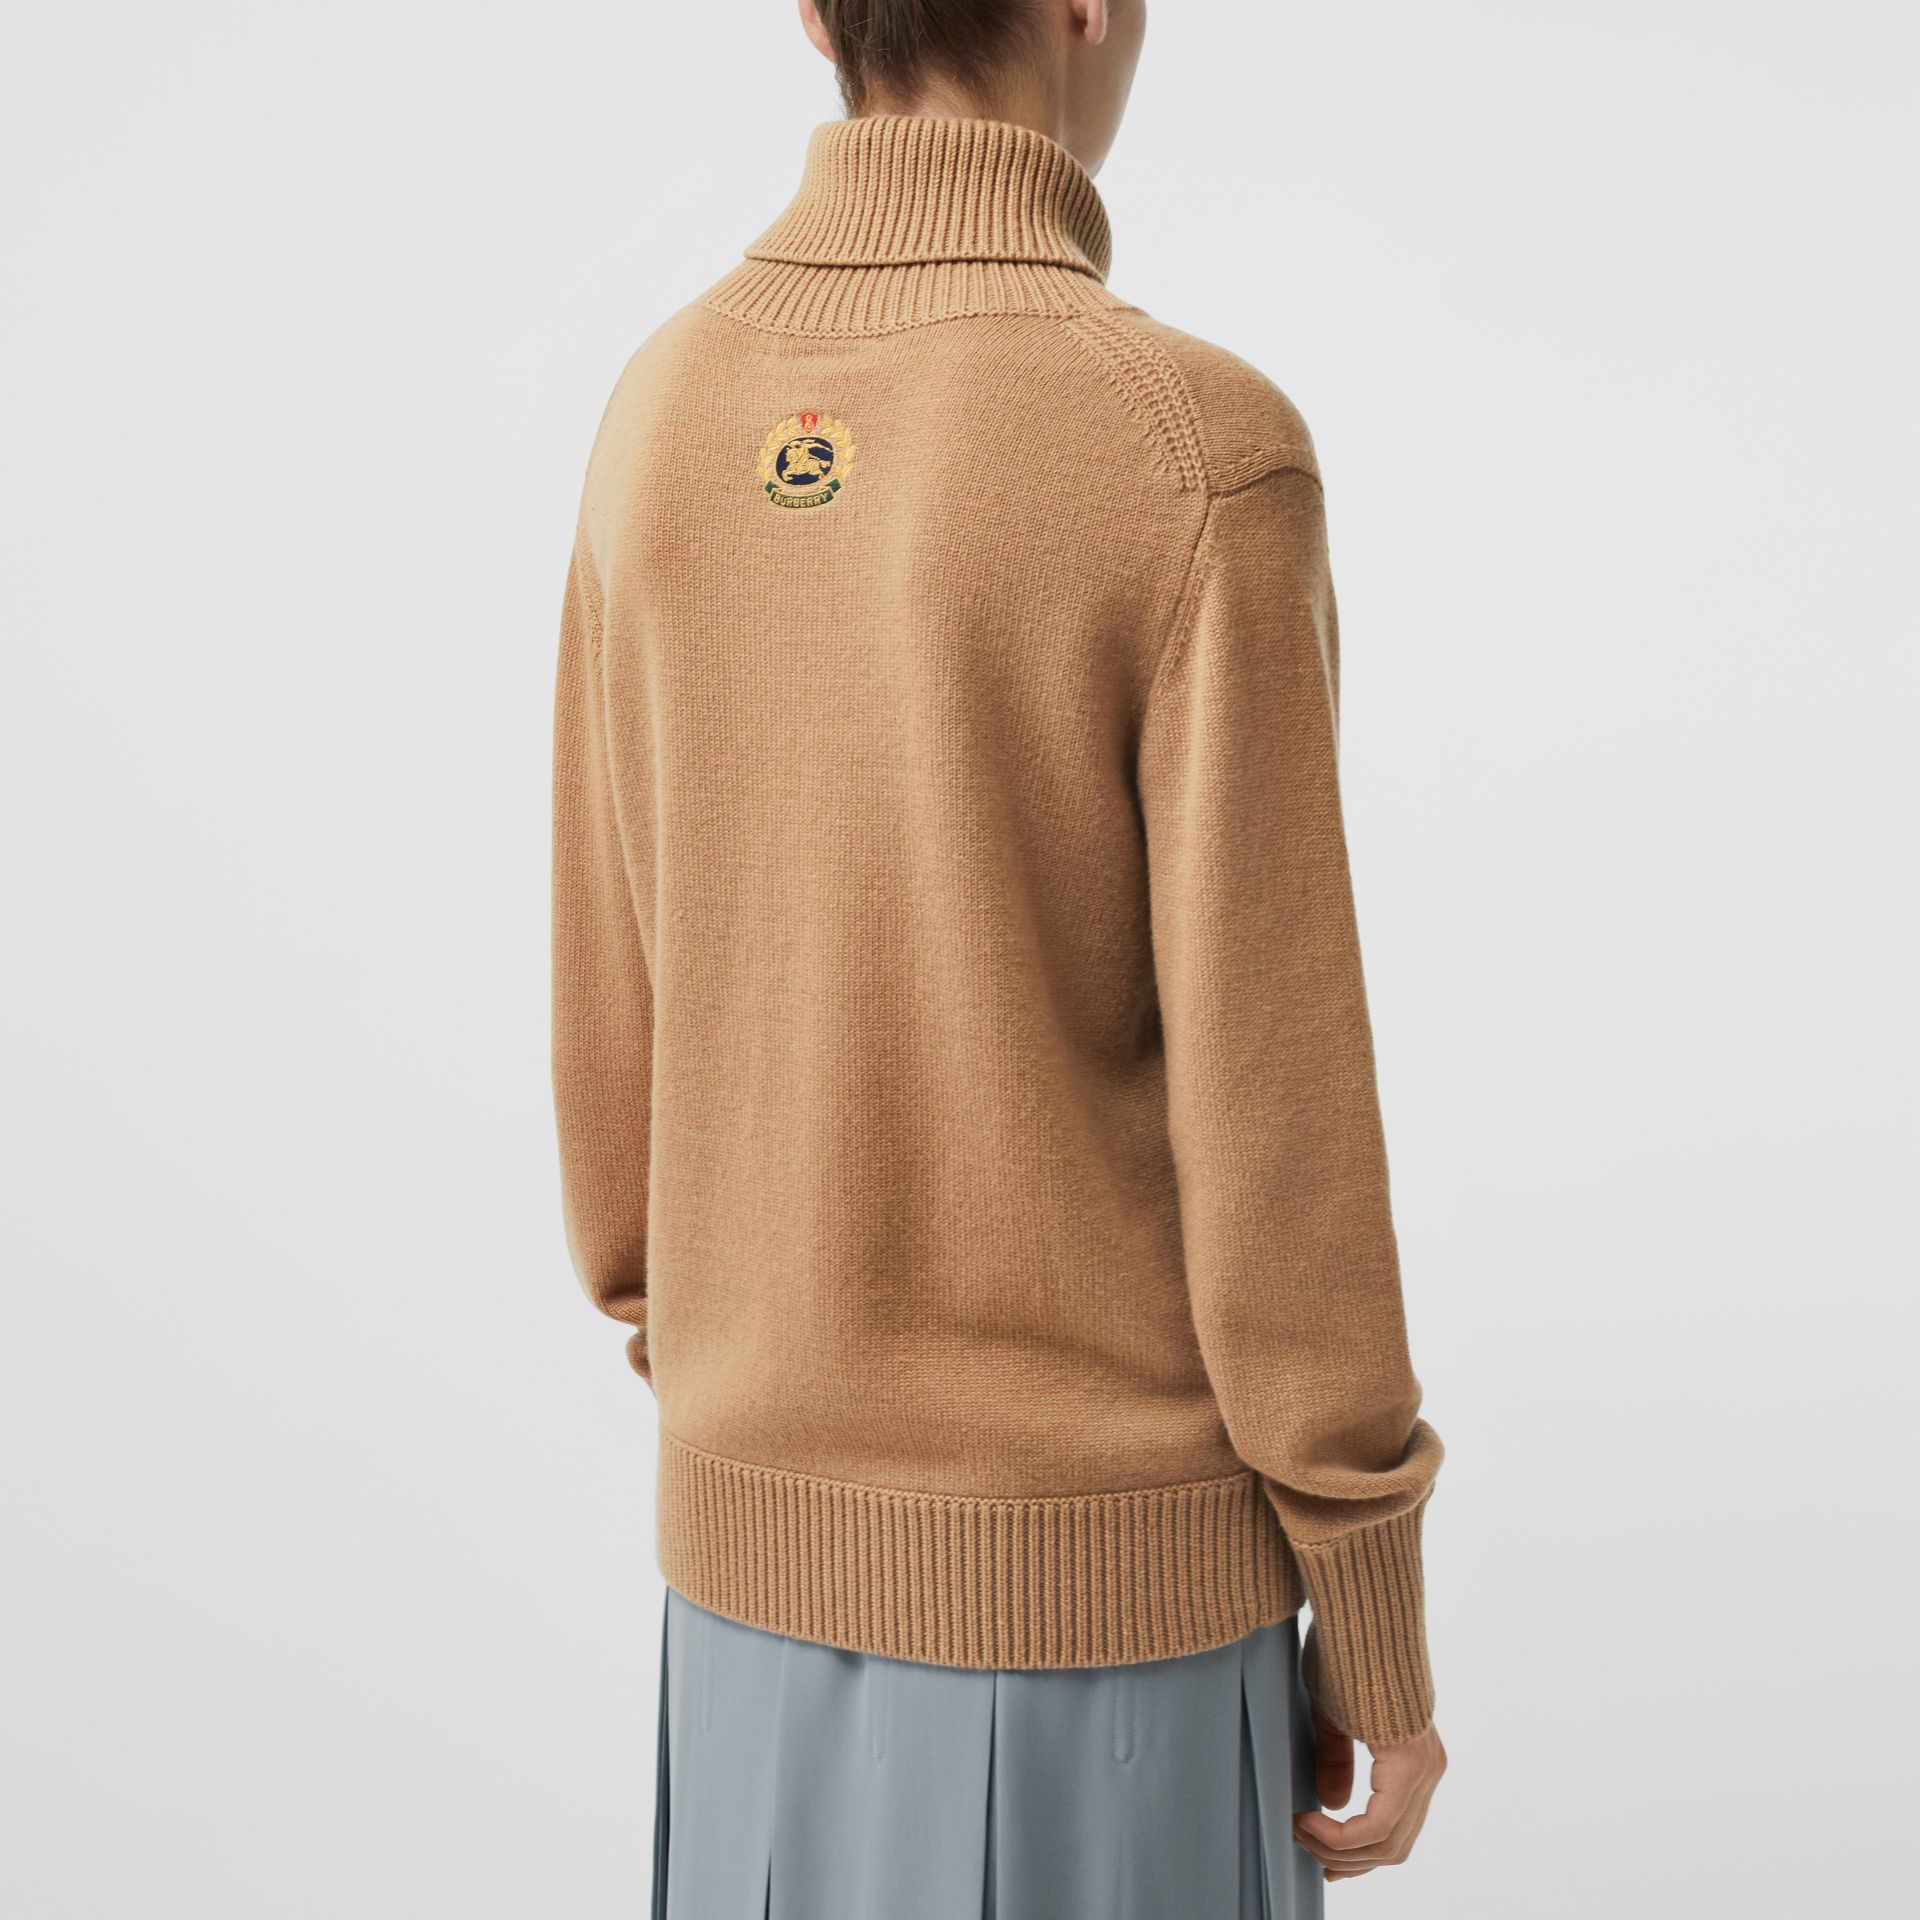 Embroidered Crest Cashmere Roll-neck Sweater in Camel - Women | Burberry United Kingdom - gallery image 2